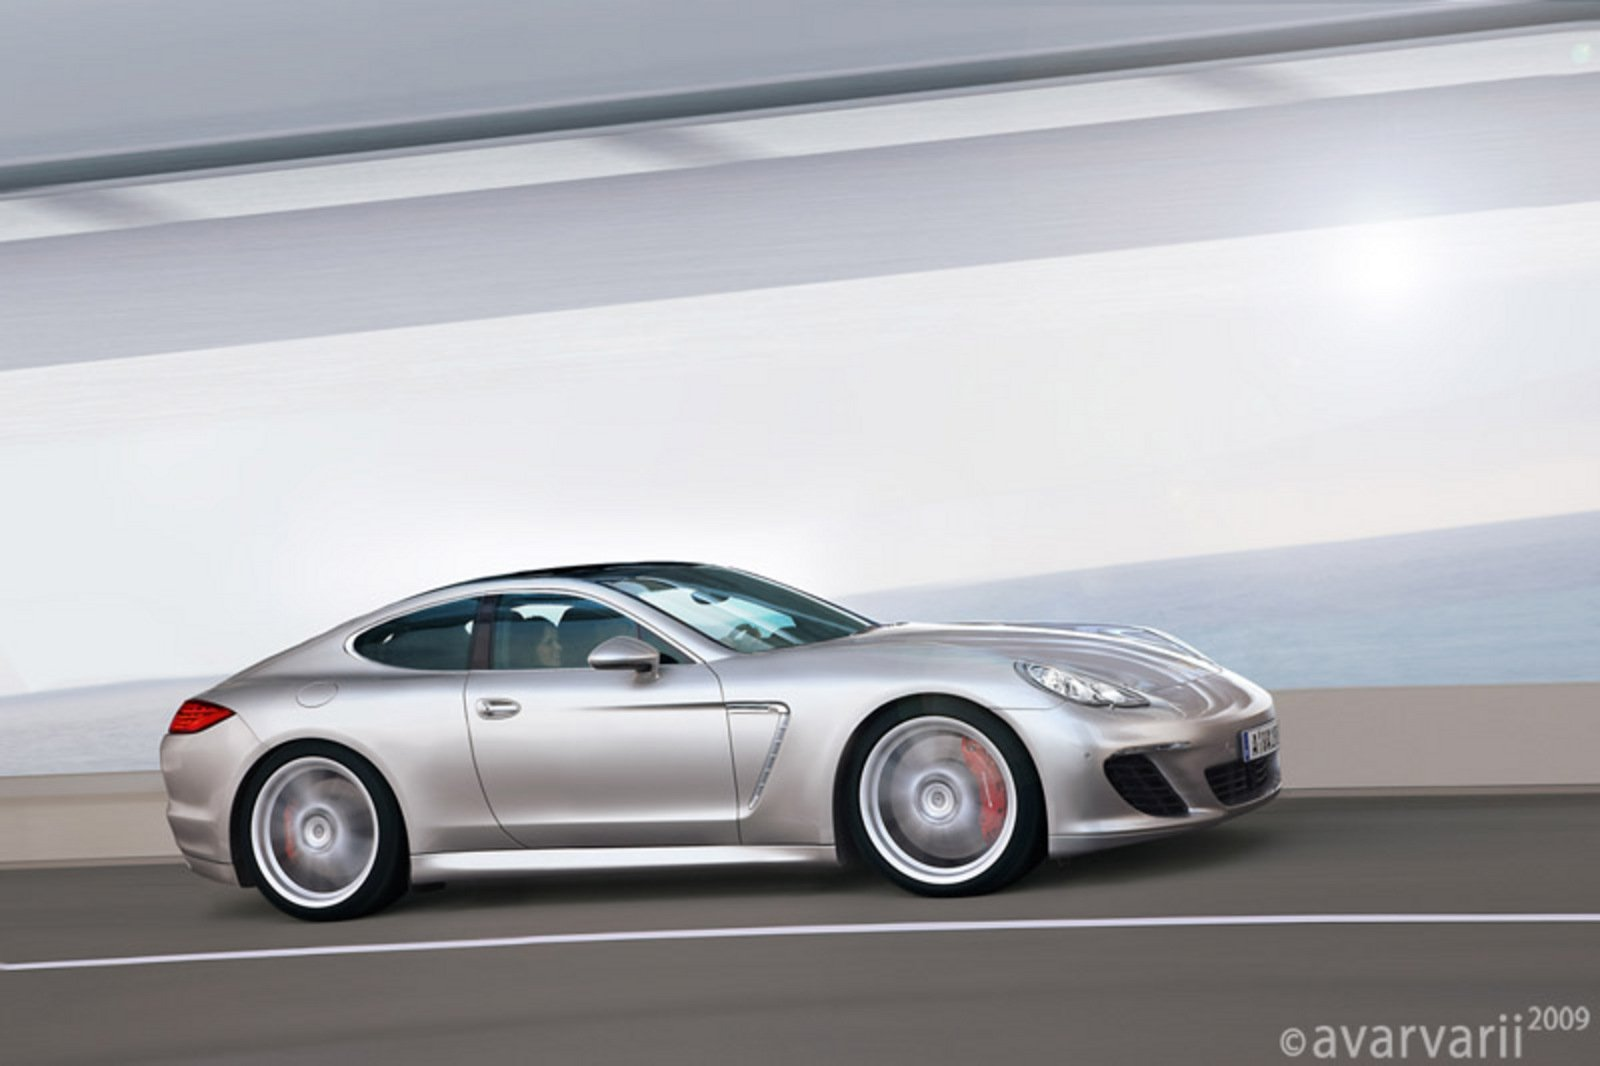 Four Door Sports Cars >> Porsche Is Preparing A New 928 GT Coupe News - Top Speed